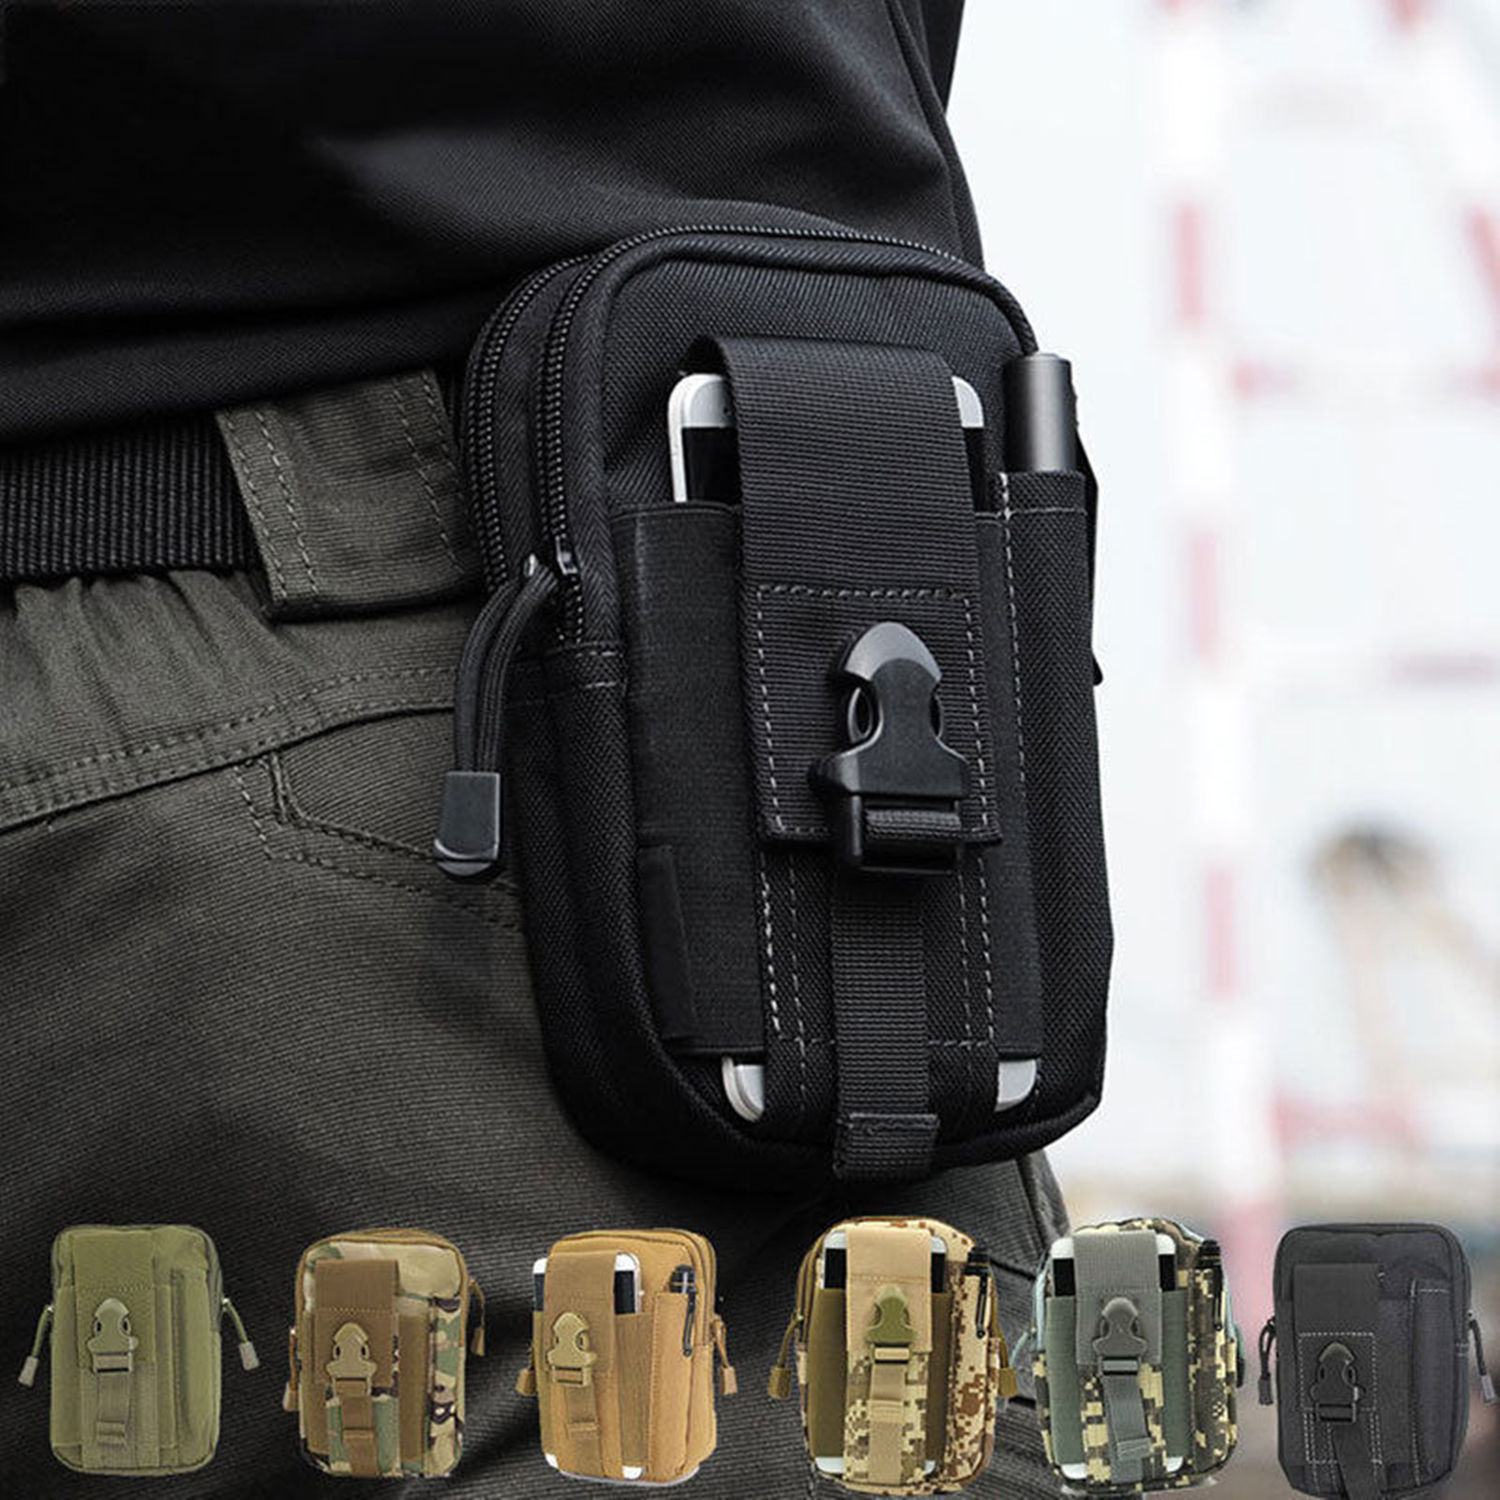 New 2020 Tactical Pouch Belt Waist Pack Bag Travel Military Waist Fanny Pack Phone Pocket Money Pouch